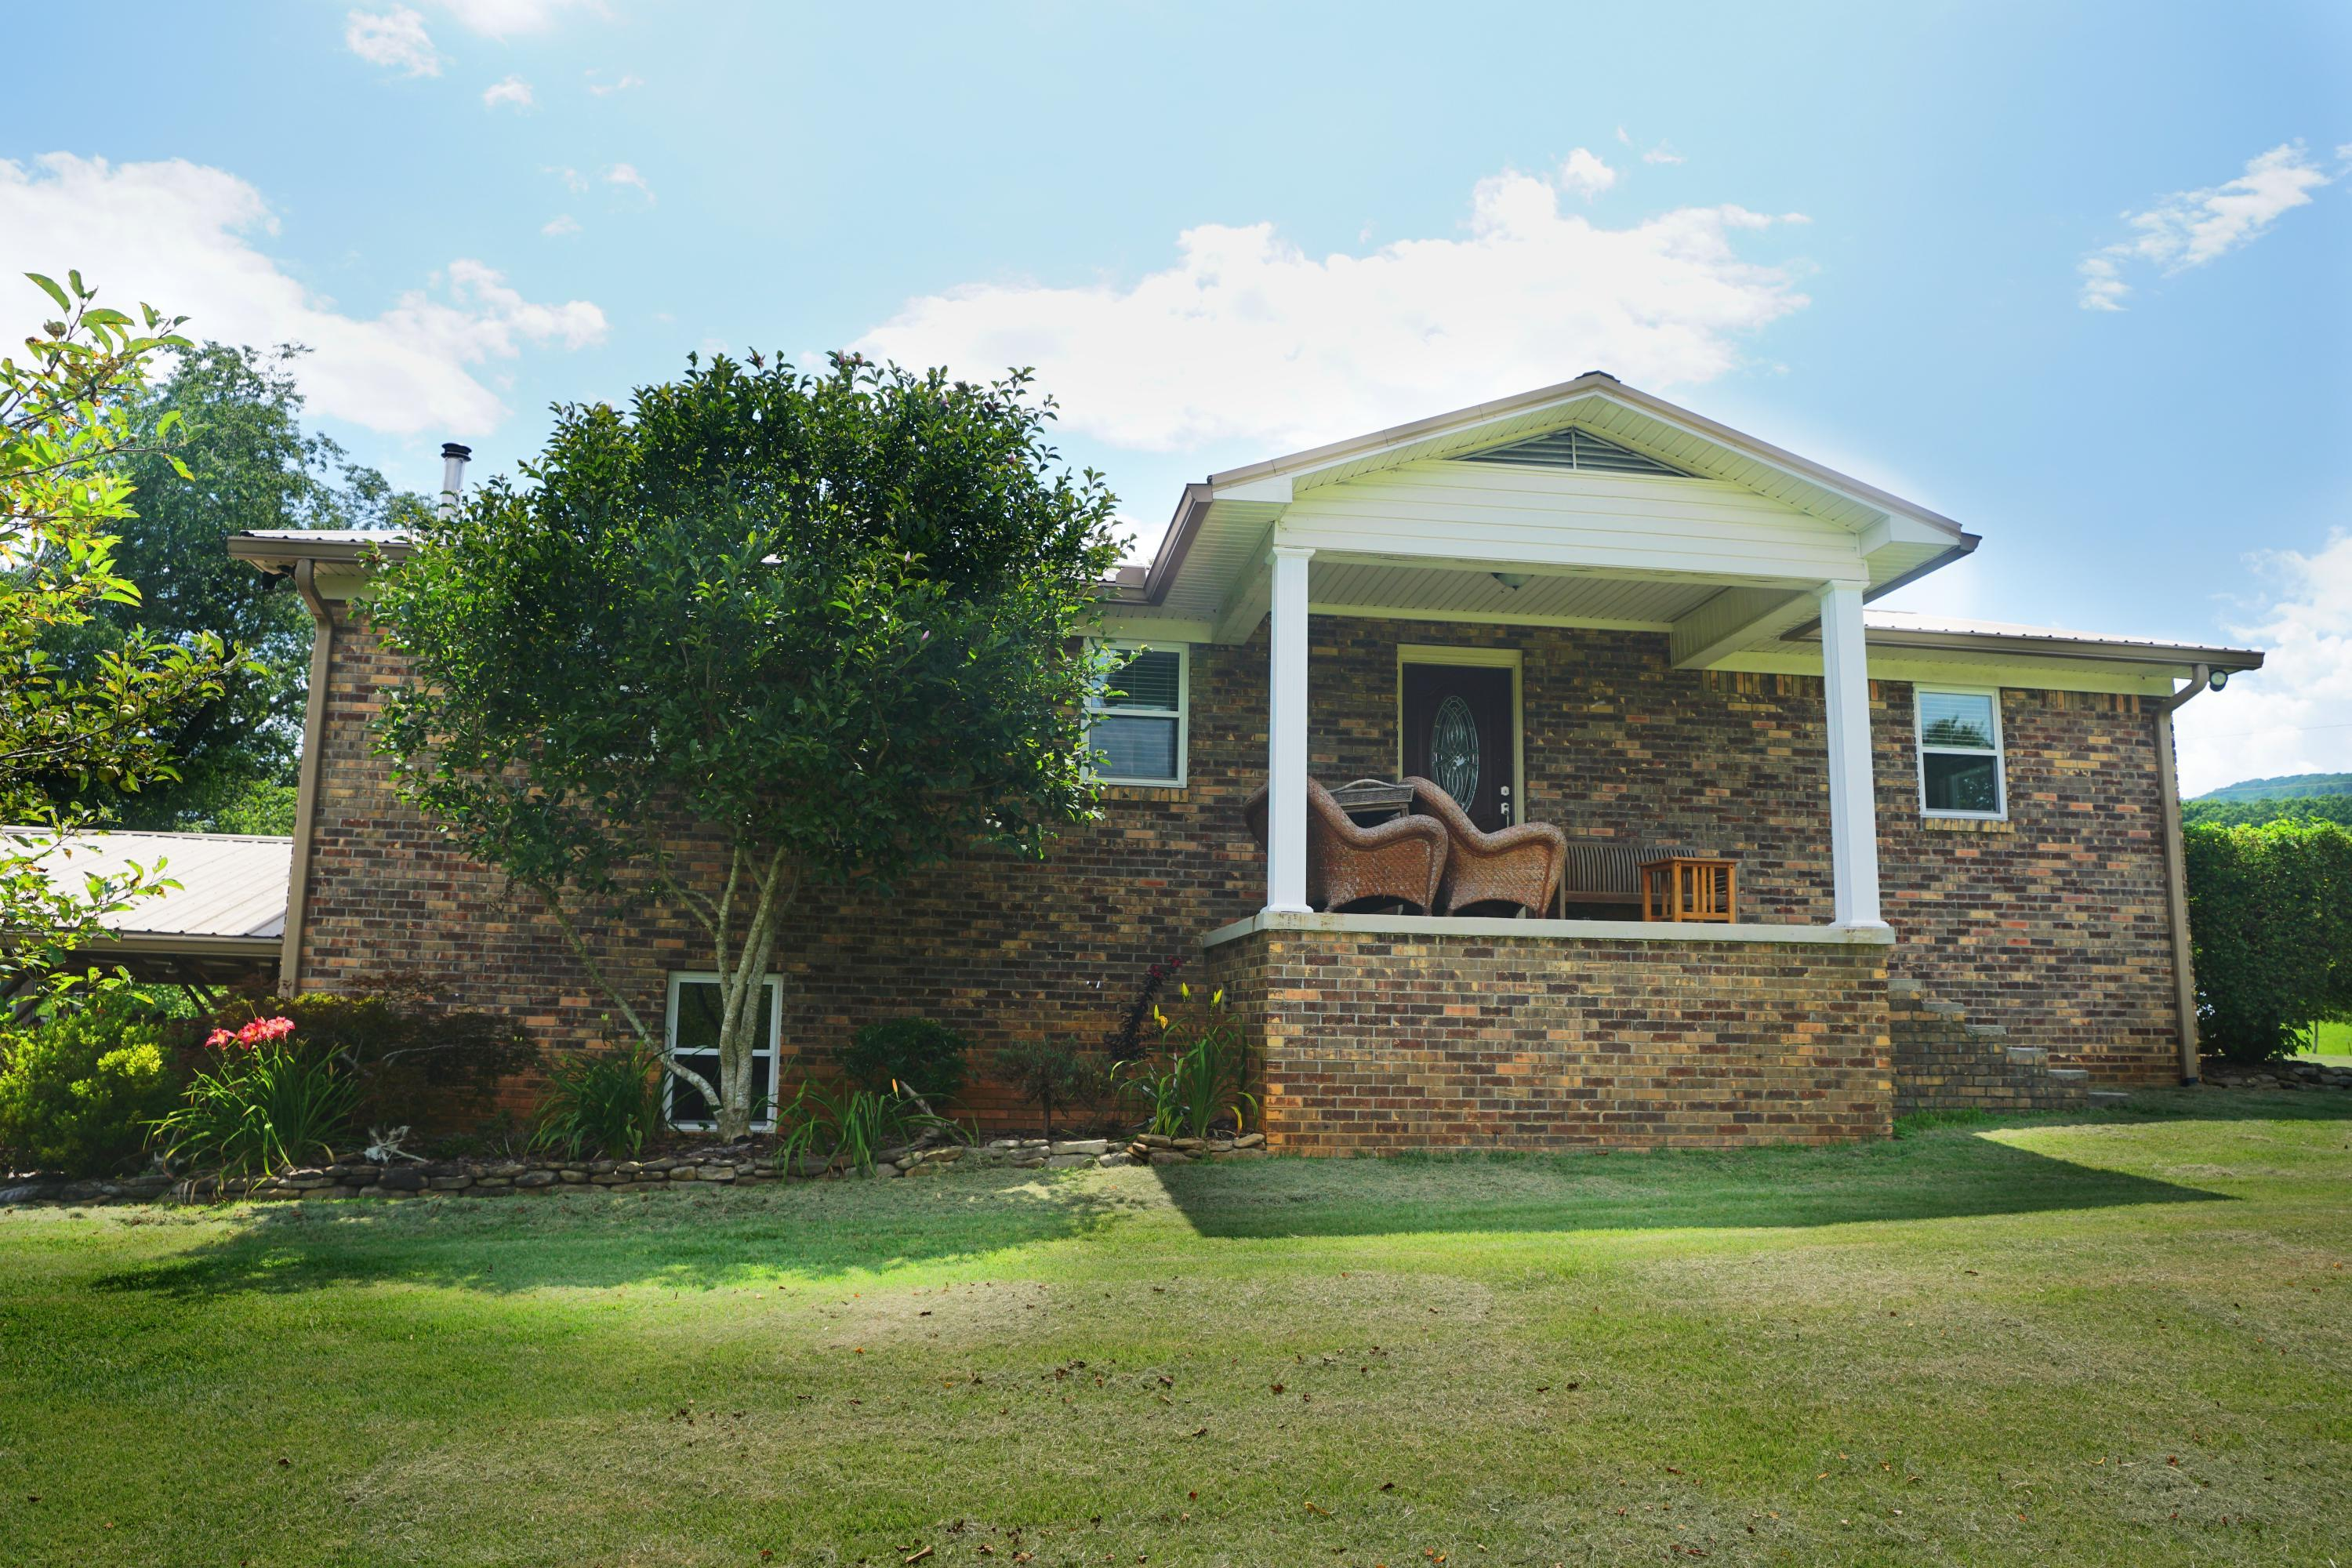 425 Harve Lewis Rd, Pikeville, TN | MLS# 1302995 | Joe Windle | 423